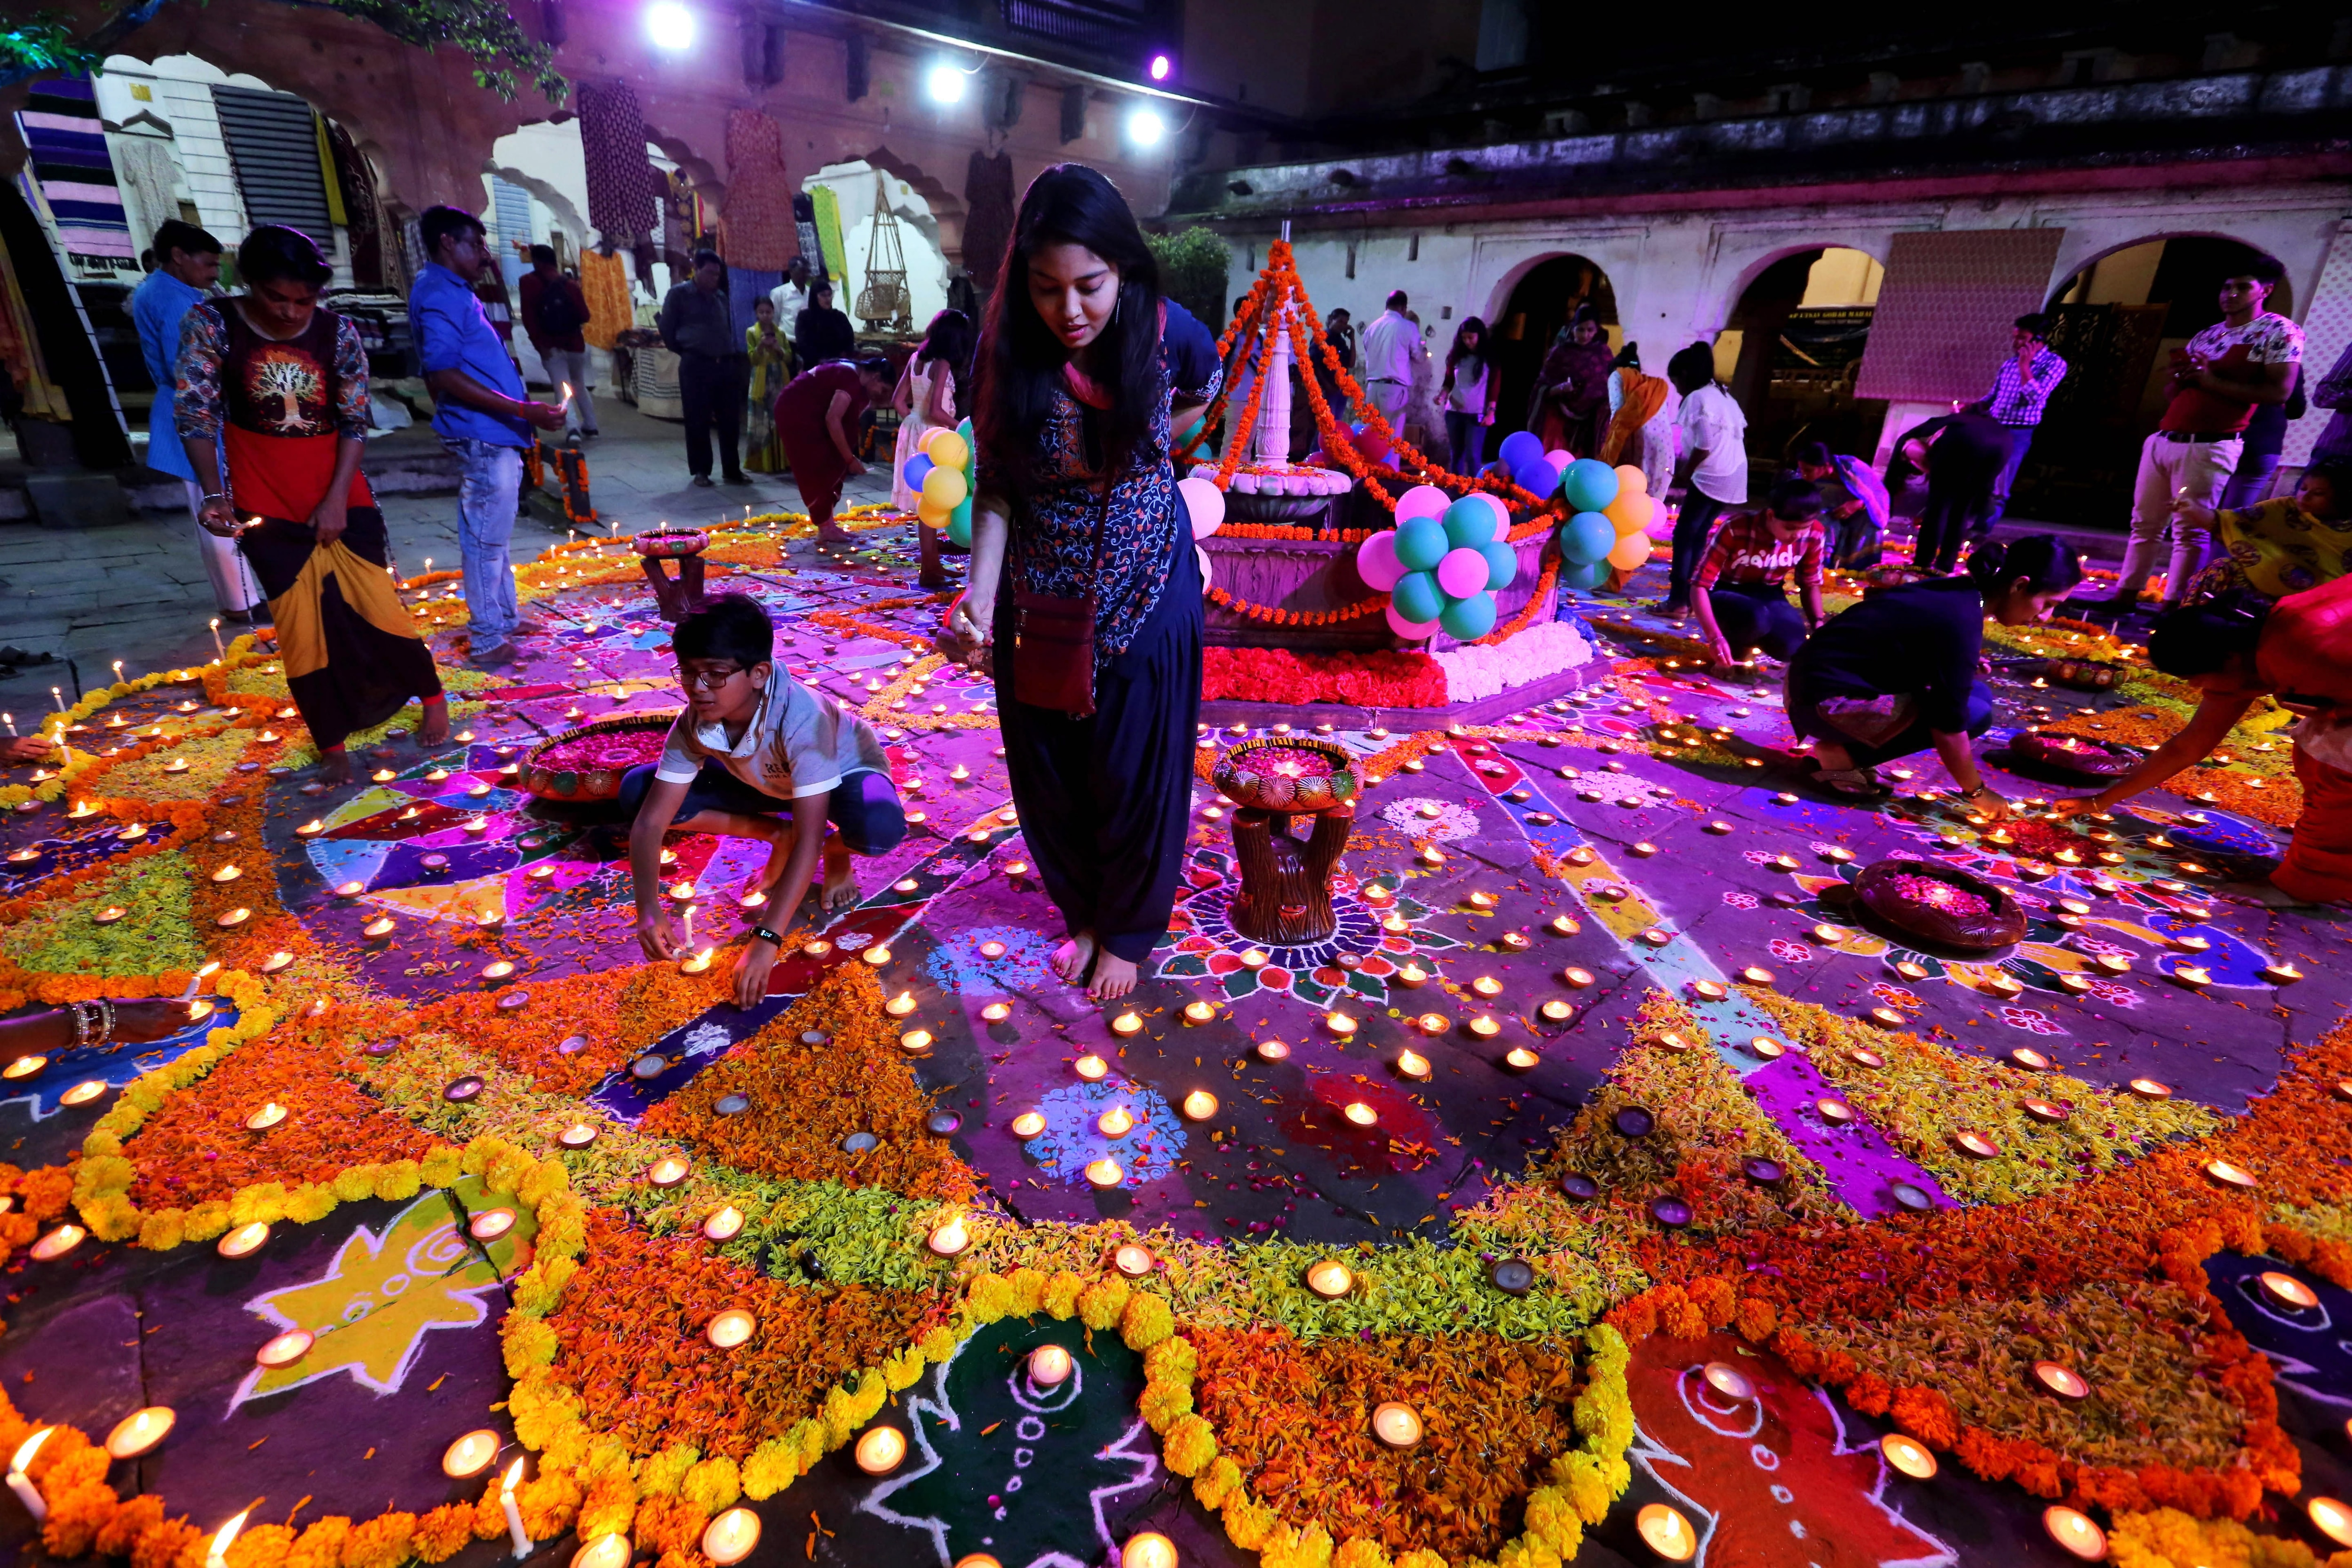 Indian people light oil lamps during the Light Festival as part of the Diwali festival celebrations in Bhopal, India.